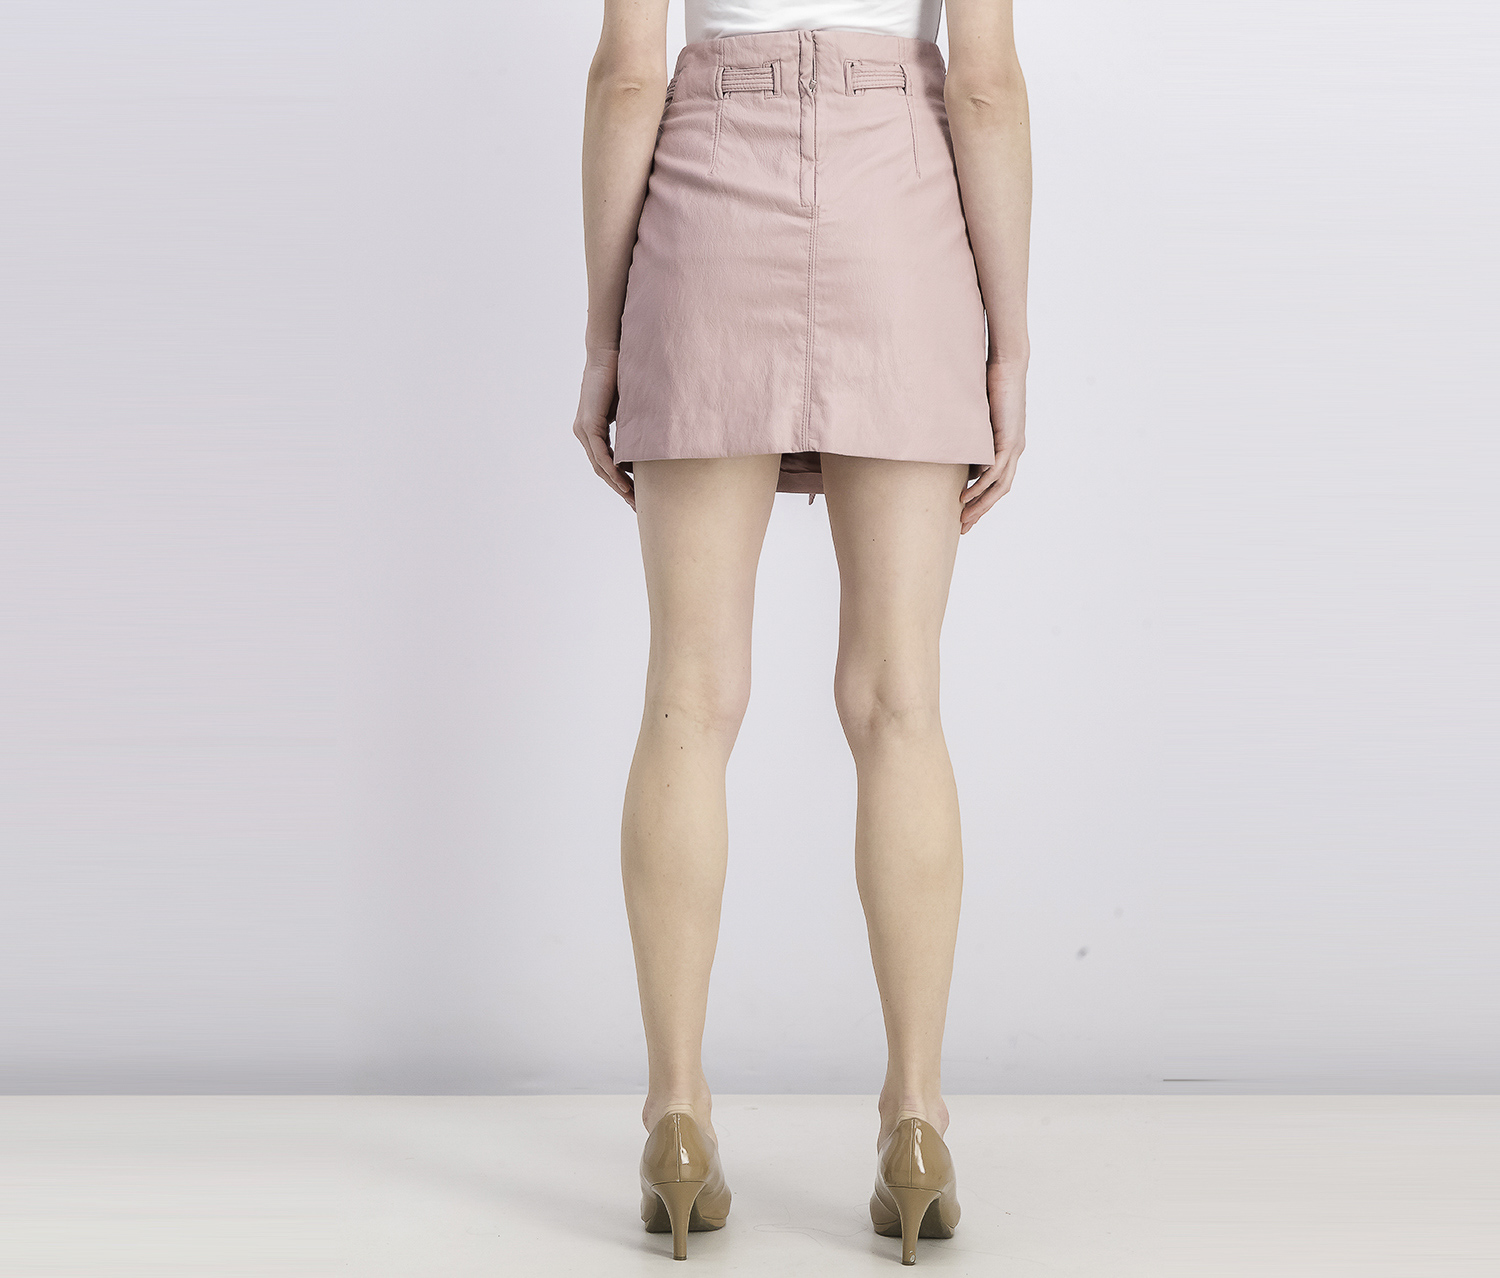 FREE PEOPLE Womens Pink Faux Leather Payton Paper Bag Mini Skirt 2